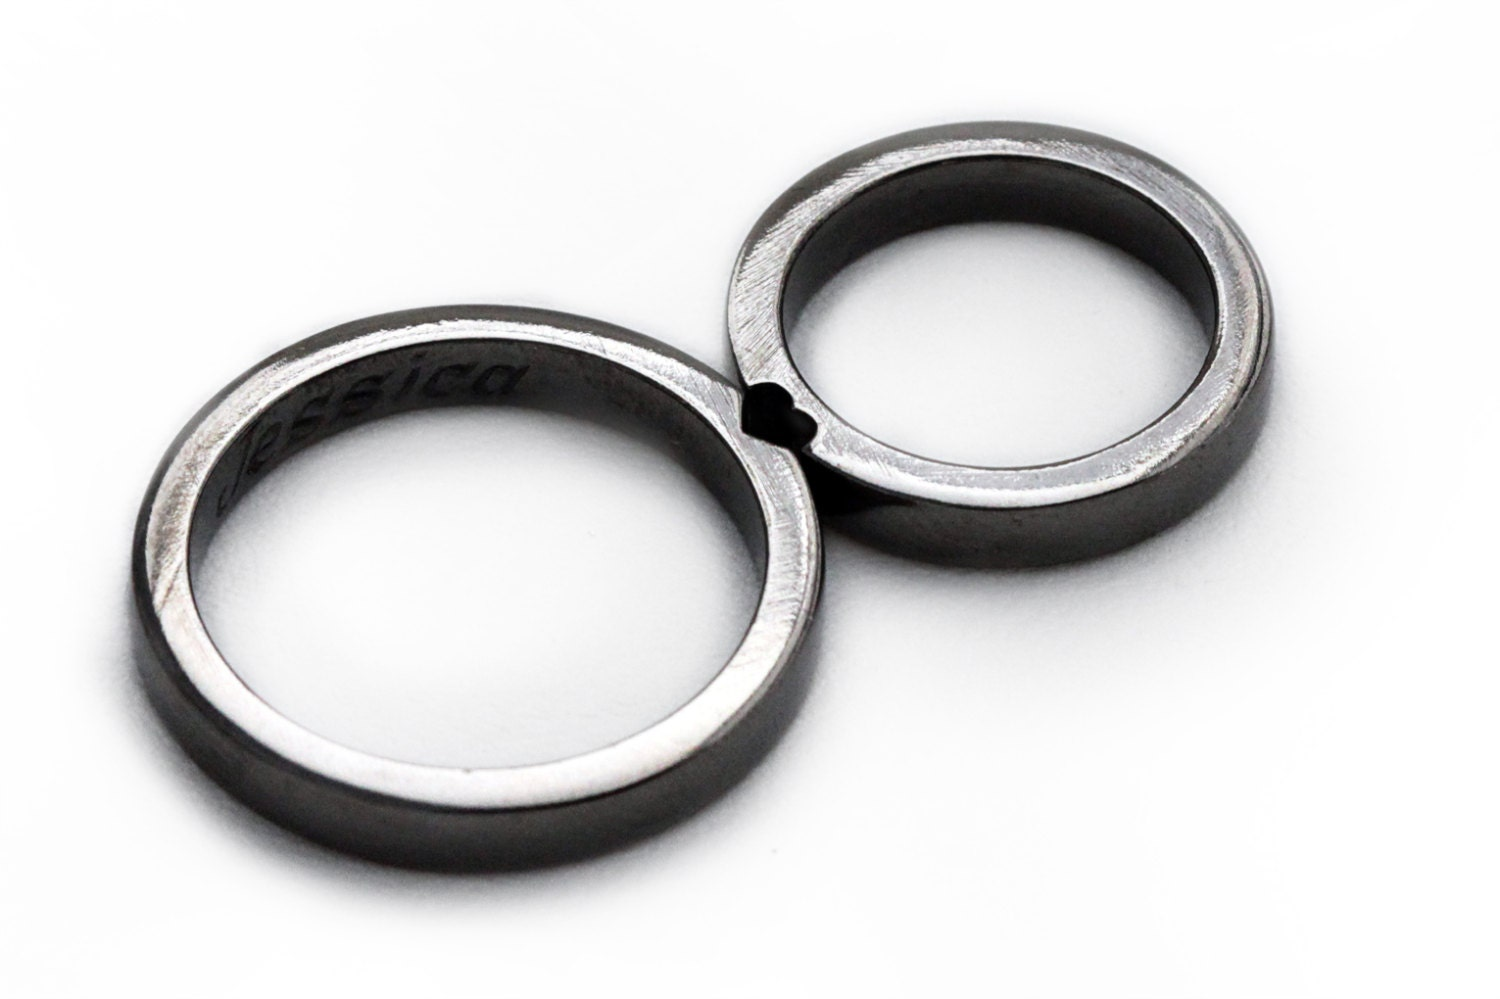 zoom - Black Wedding Ring Sets